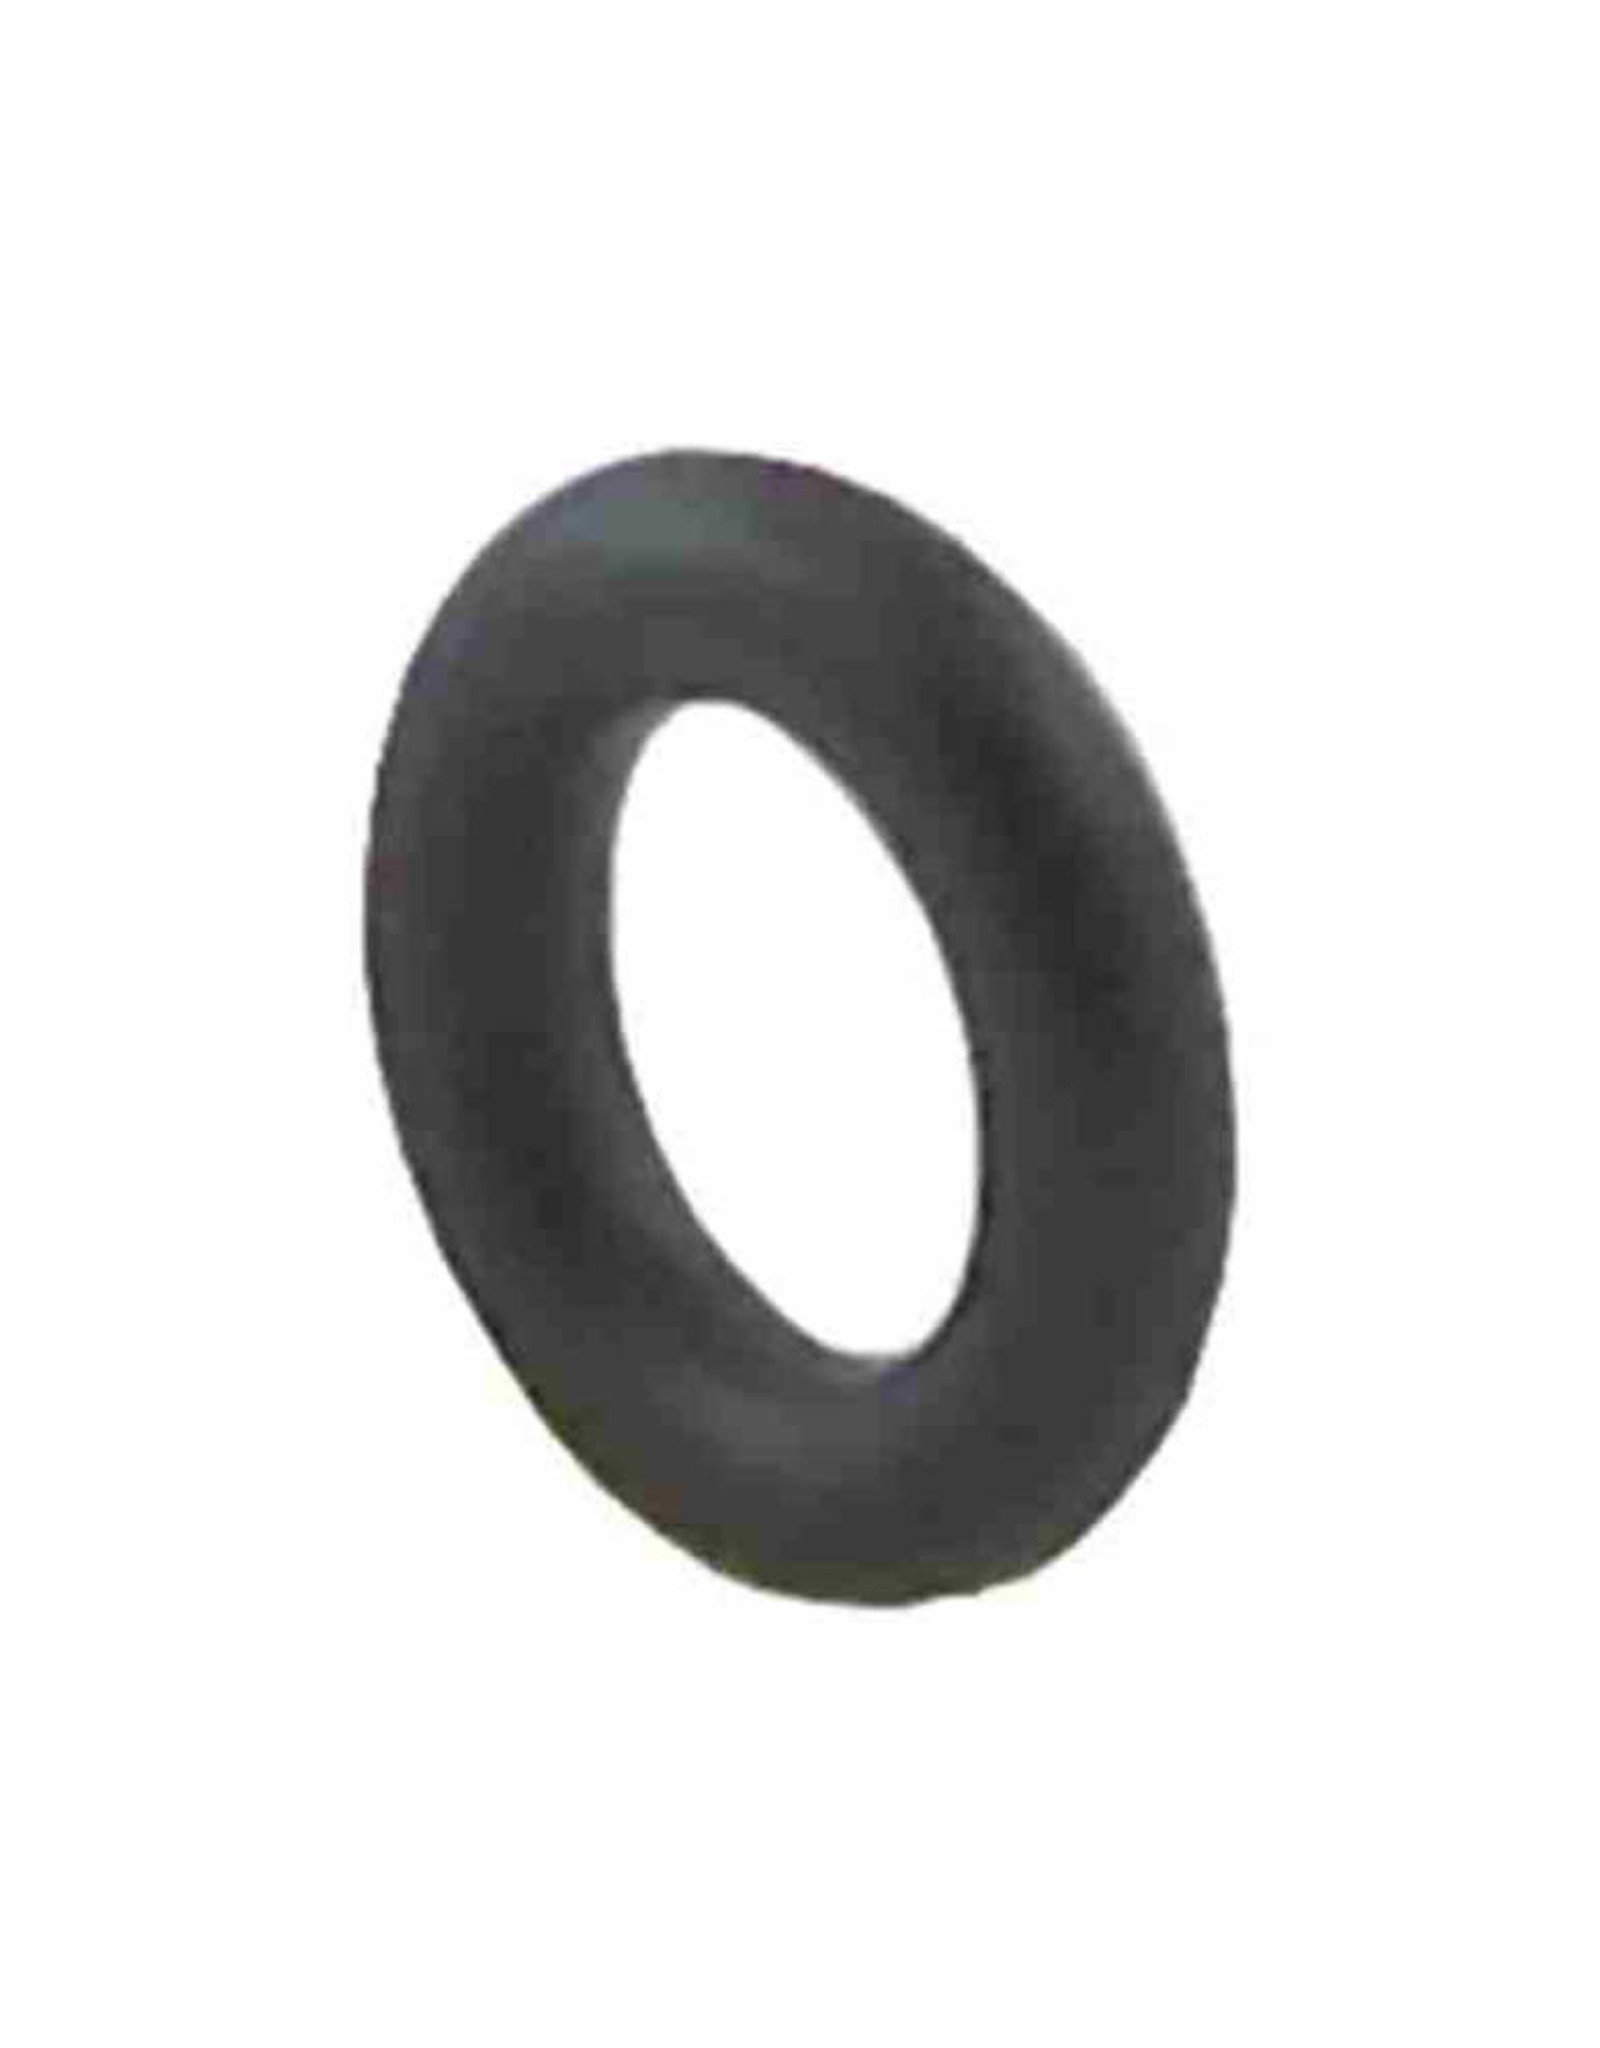 FLOW SEAL O-RING (FOR PEARL 525/575 SERIES FAUCETS)